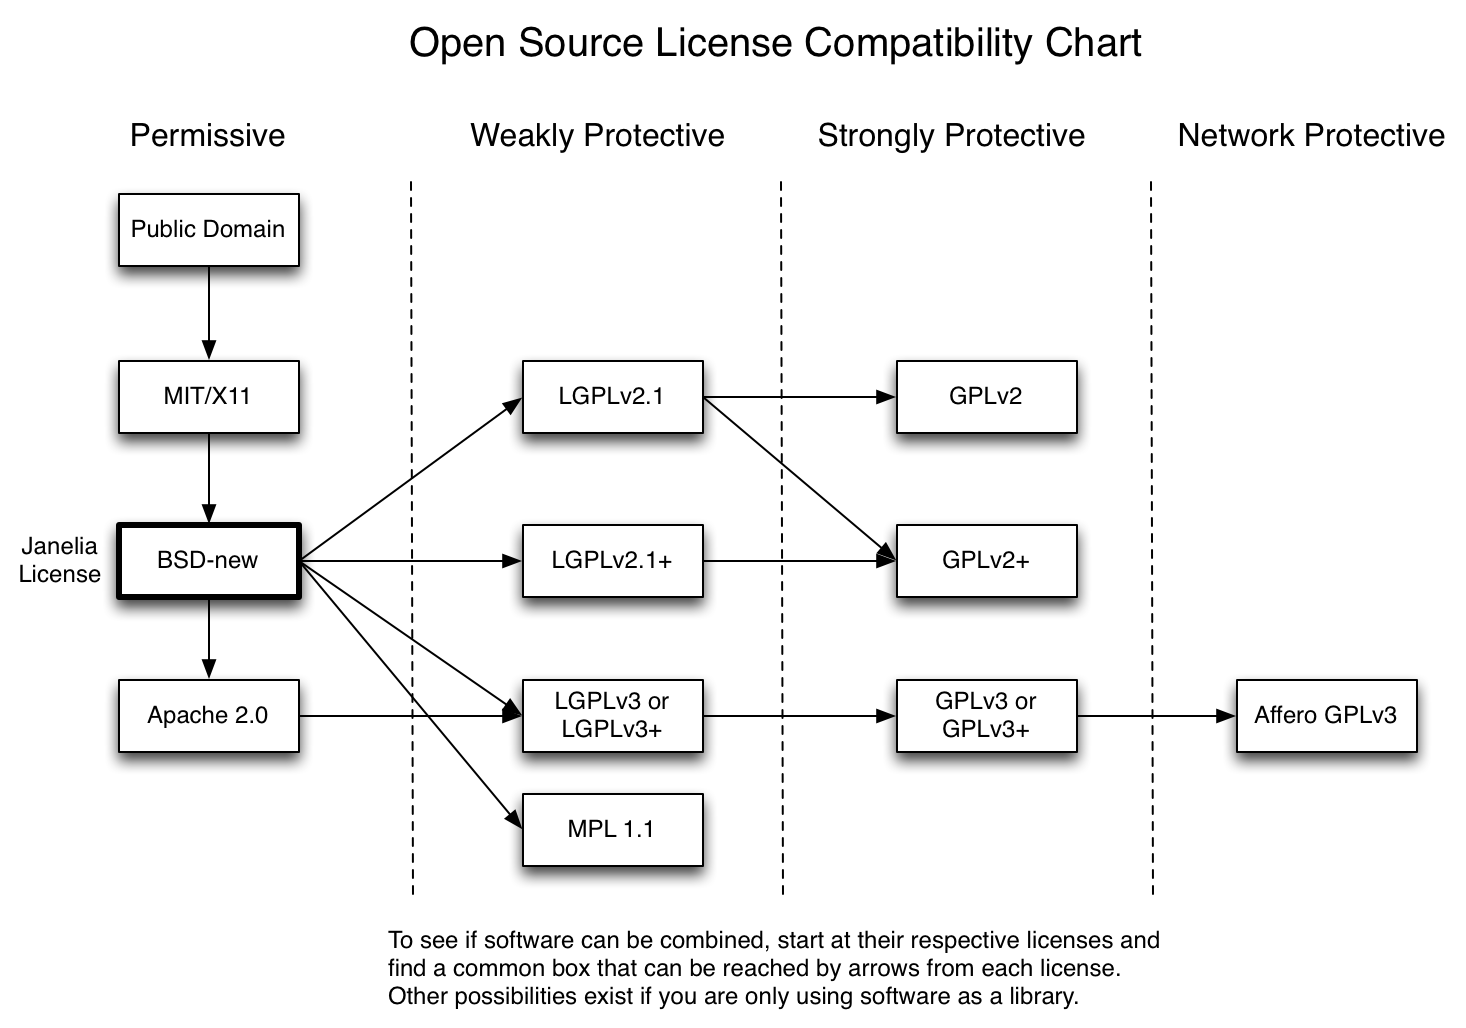 Wiring Diagram Software Open Source Page 5 And Electrical Simulator Licenses Their Compatibility Rh Janelia Flyem Github Io